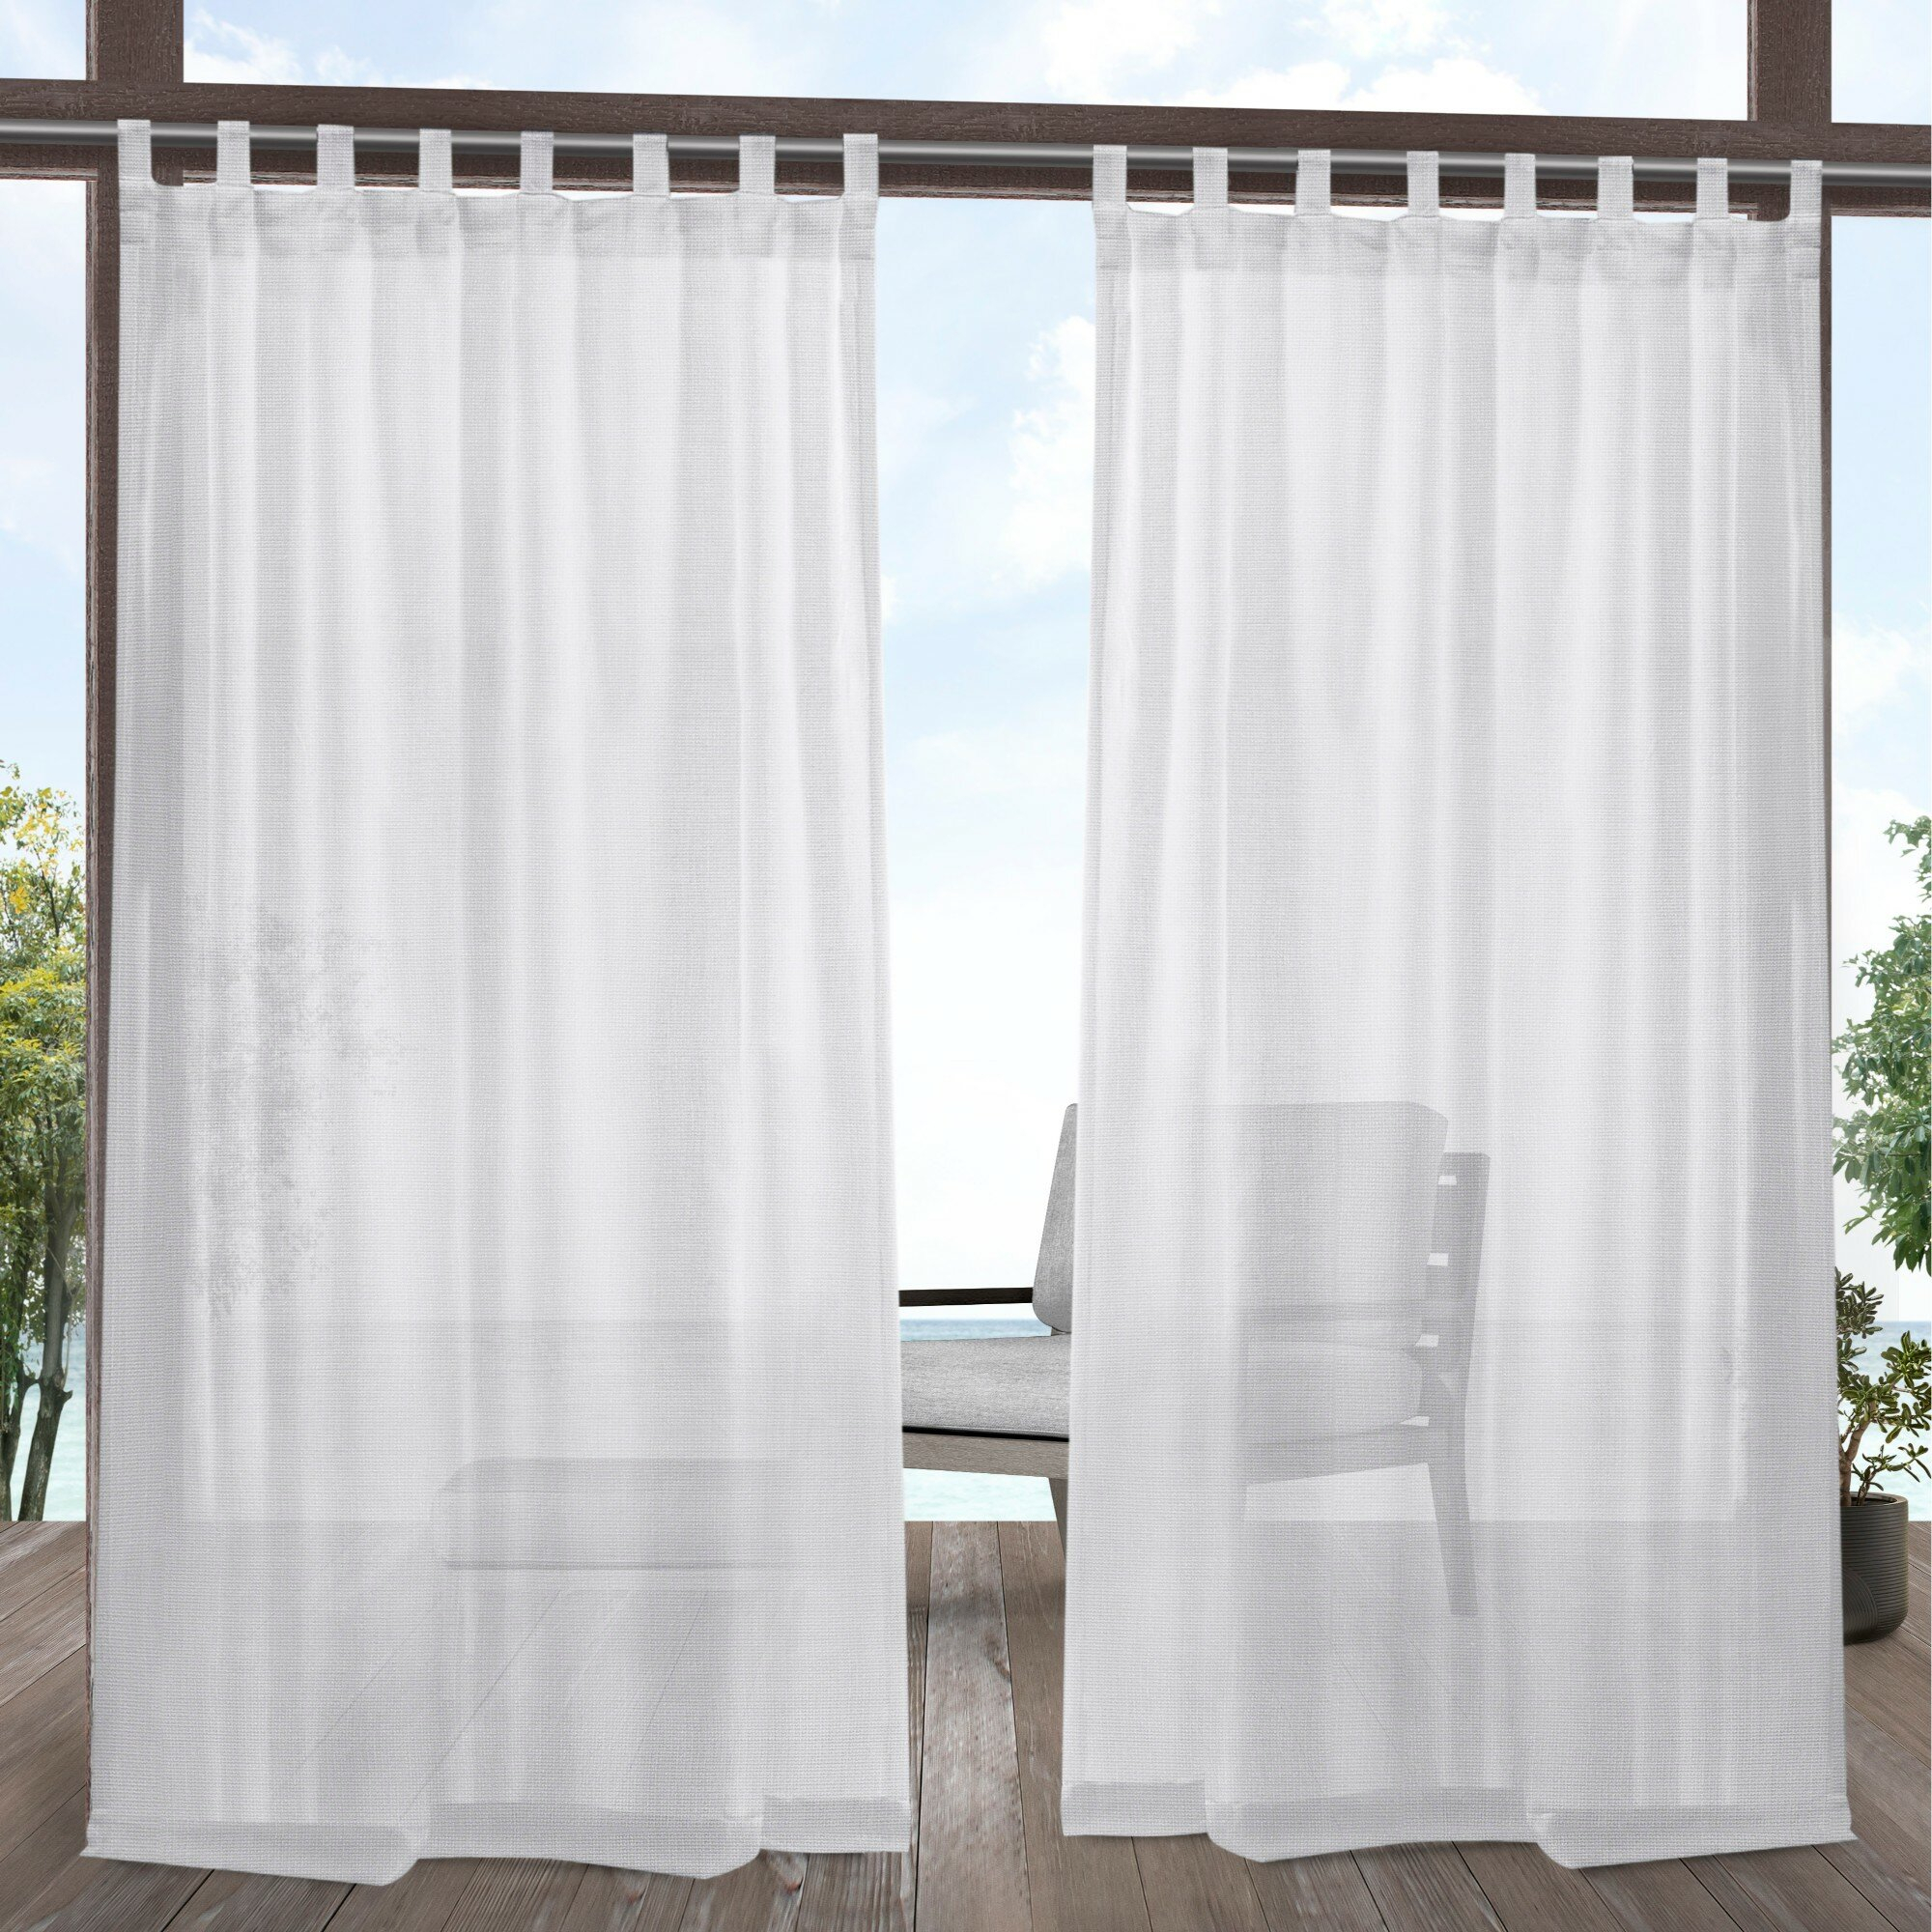 Malaya Solid Color Sheer Tab Top Curtain Panel Pair Throughout Solid Grommet Top Curtain Panel Pairs (View 10 of 30)